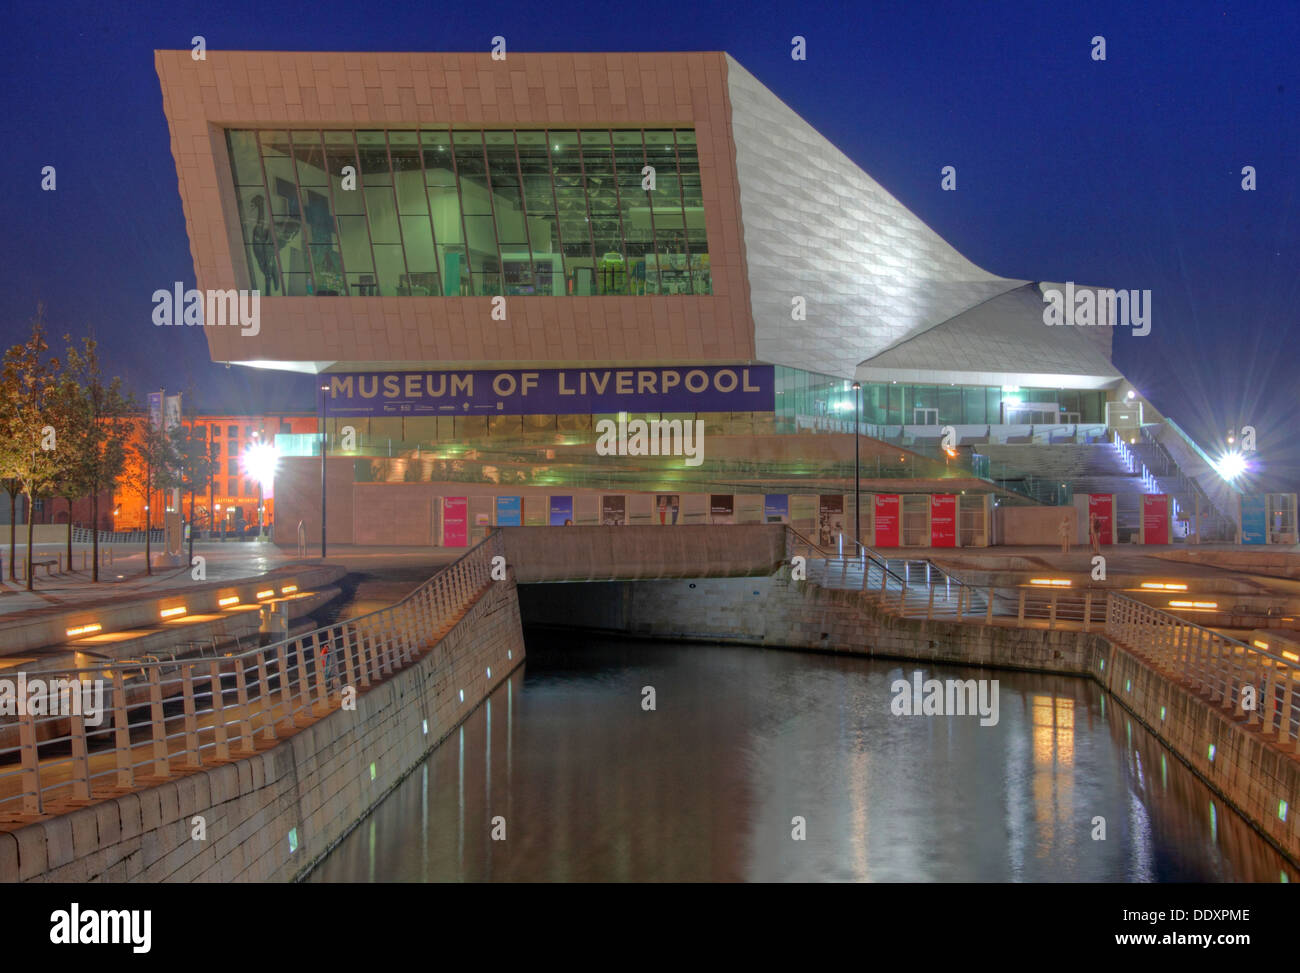 Museum of Liverpool at dusk,Merseyside,England,UK - Stock Image